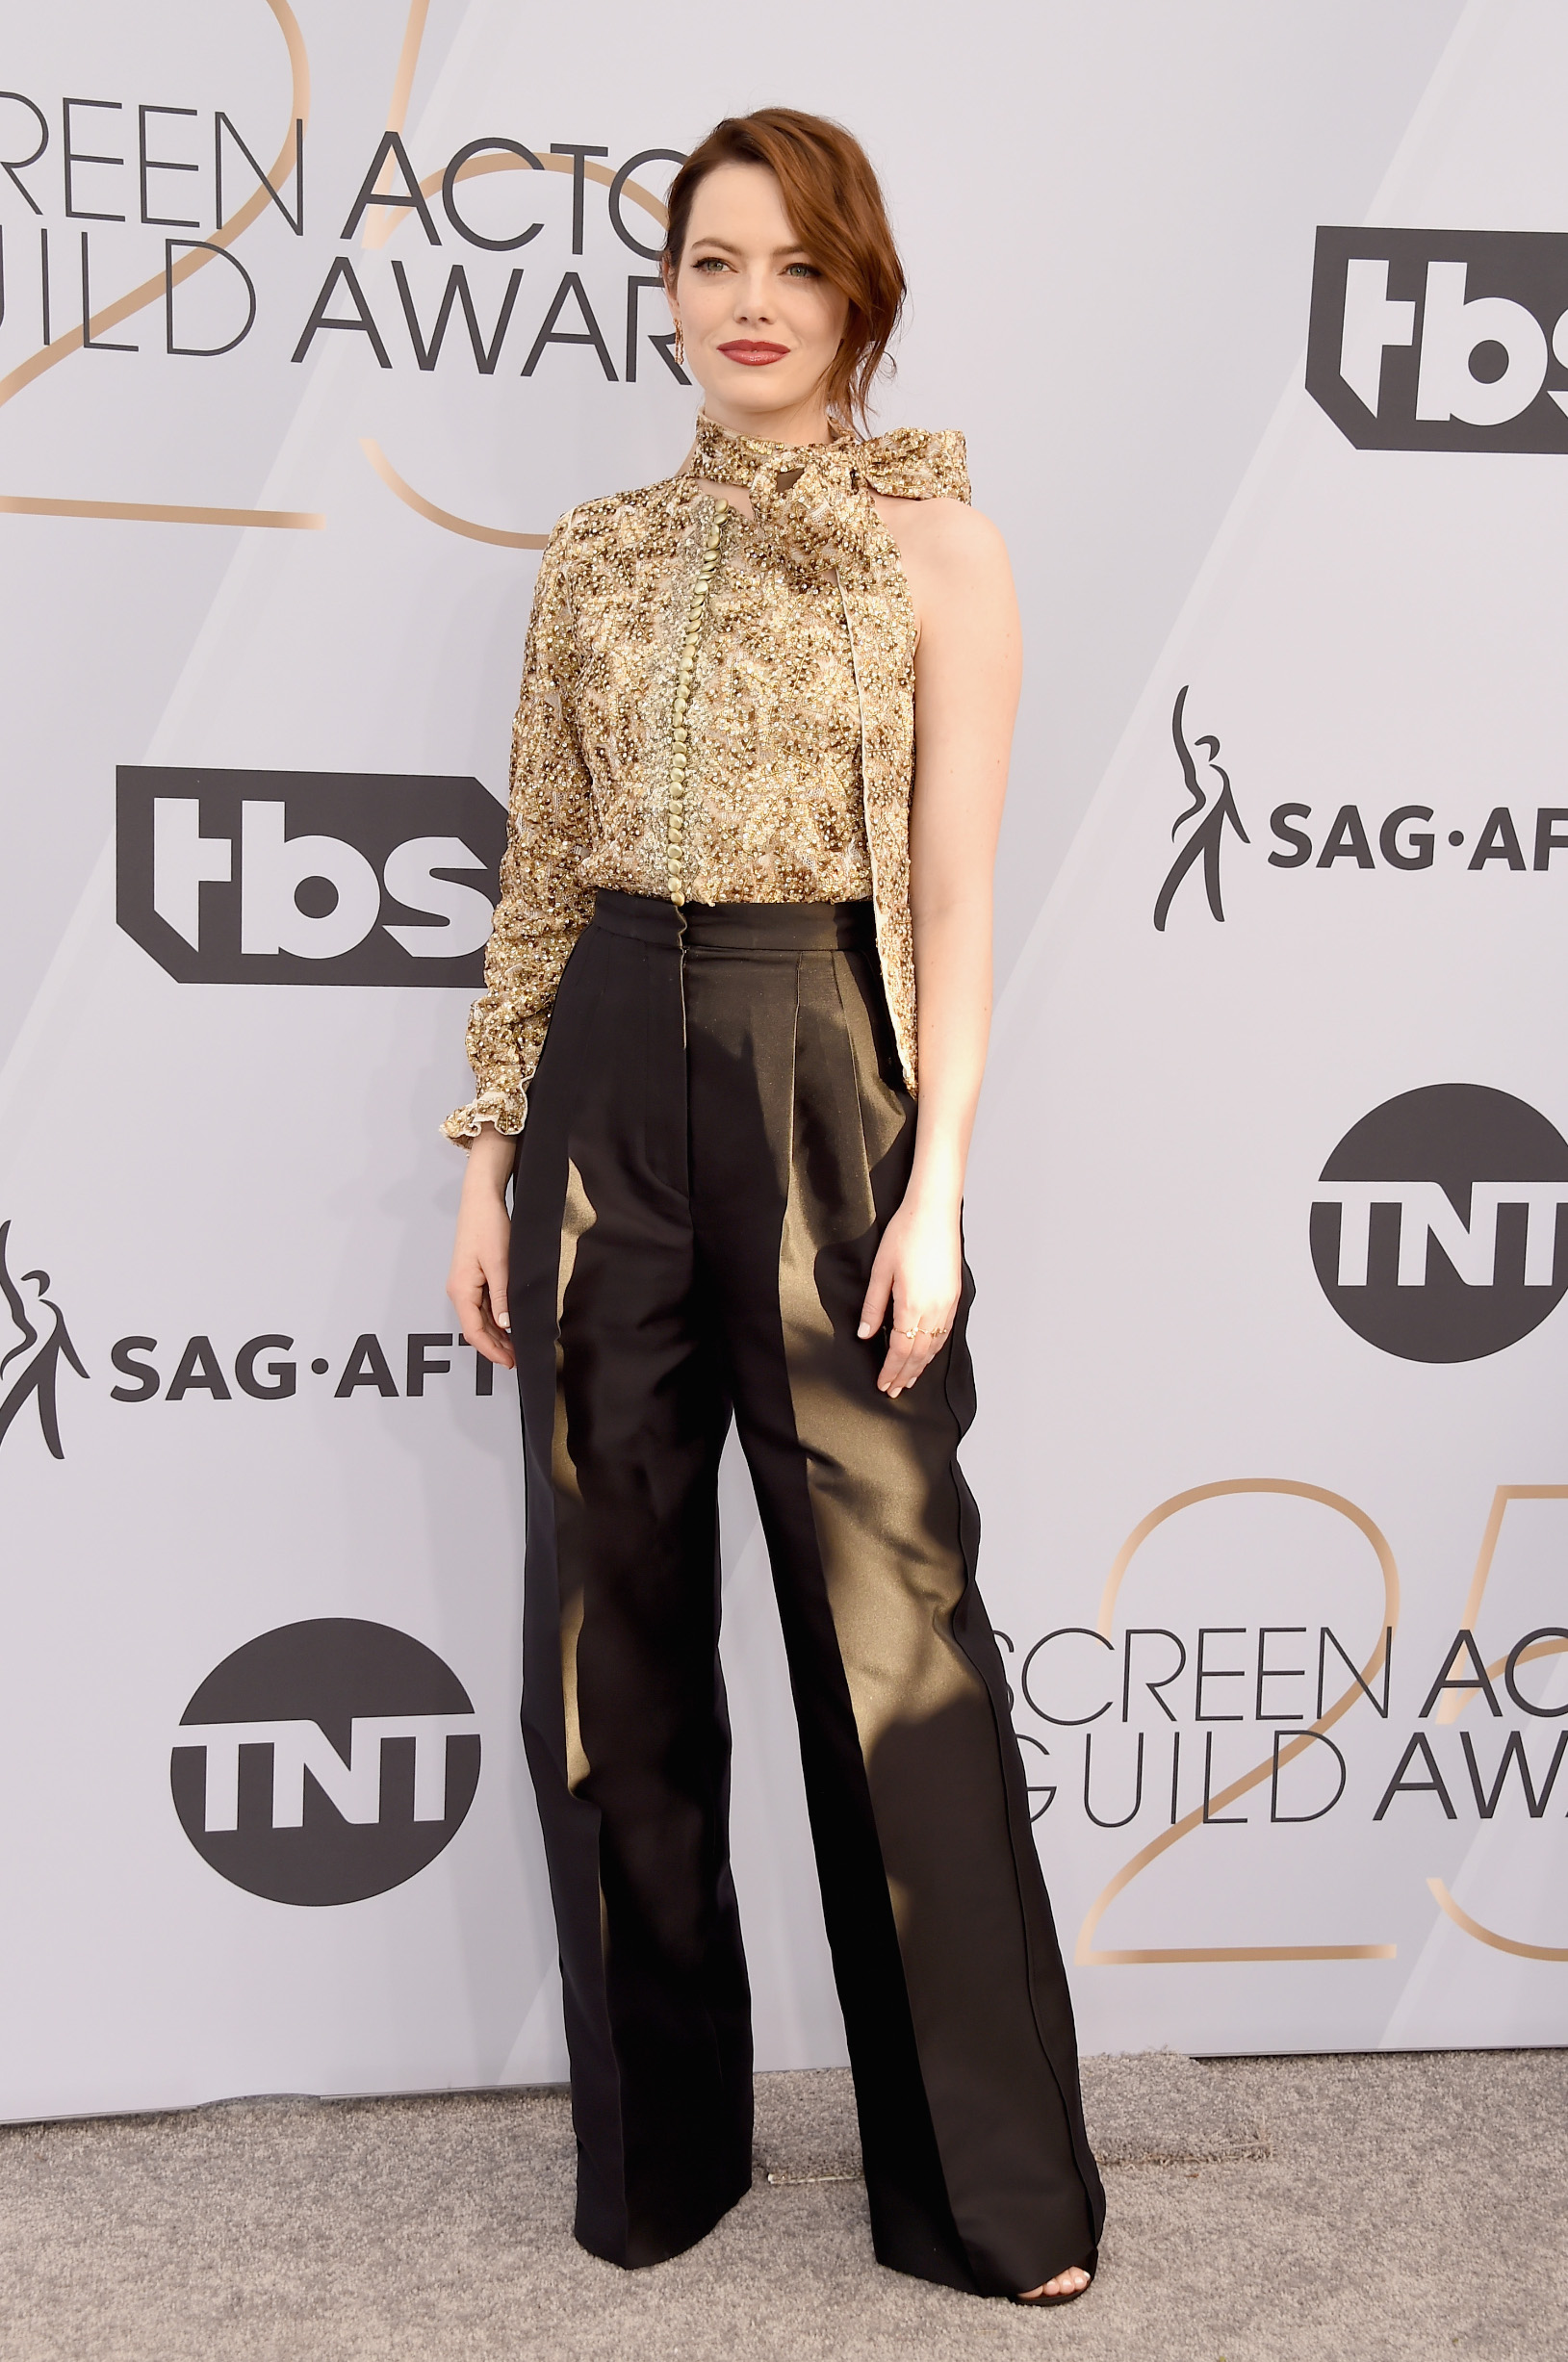 LOS ANGELES, CA - JANUARY 27:  Emma Stone attends the 25th Annual Screen ActorsGuild Awards at The Shrine Auditorium on January 27, 2019 in Los Angeles, California. 480645  (Photo by Gregg DeGuire/Getty Images for Turner)